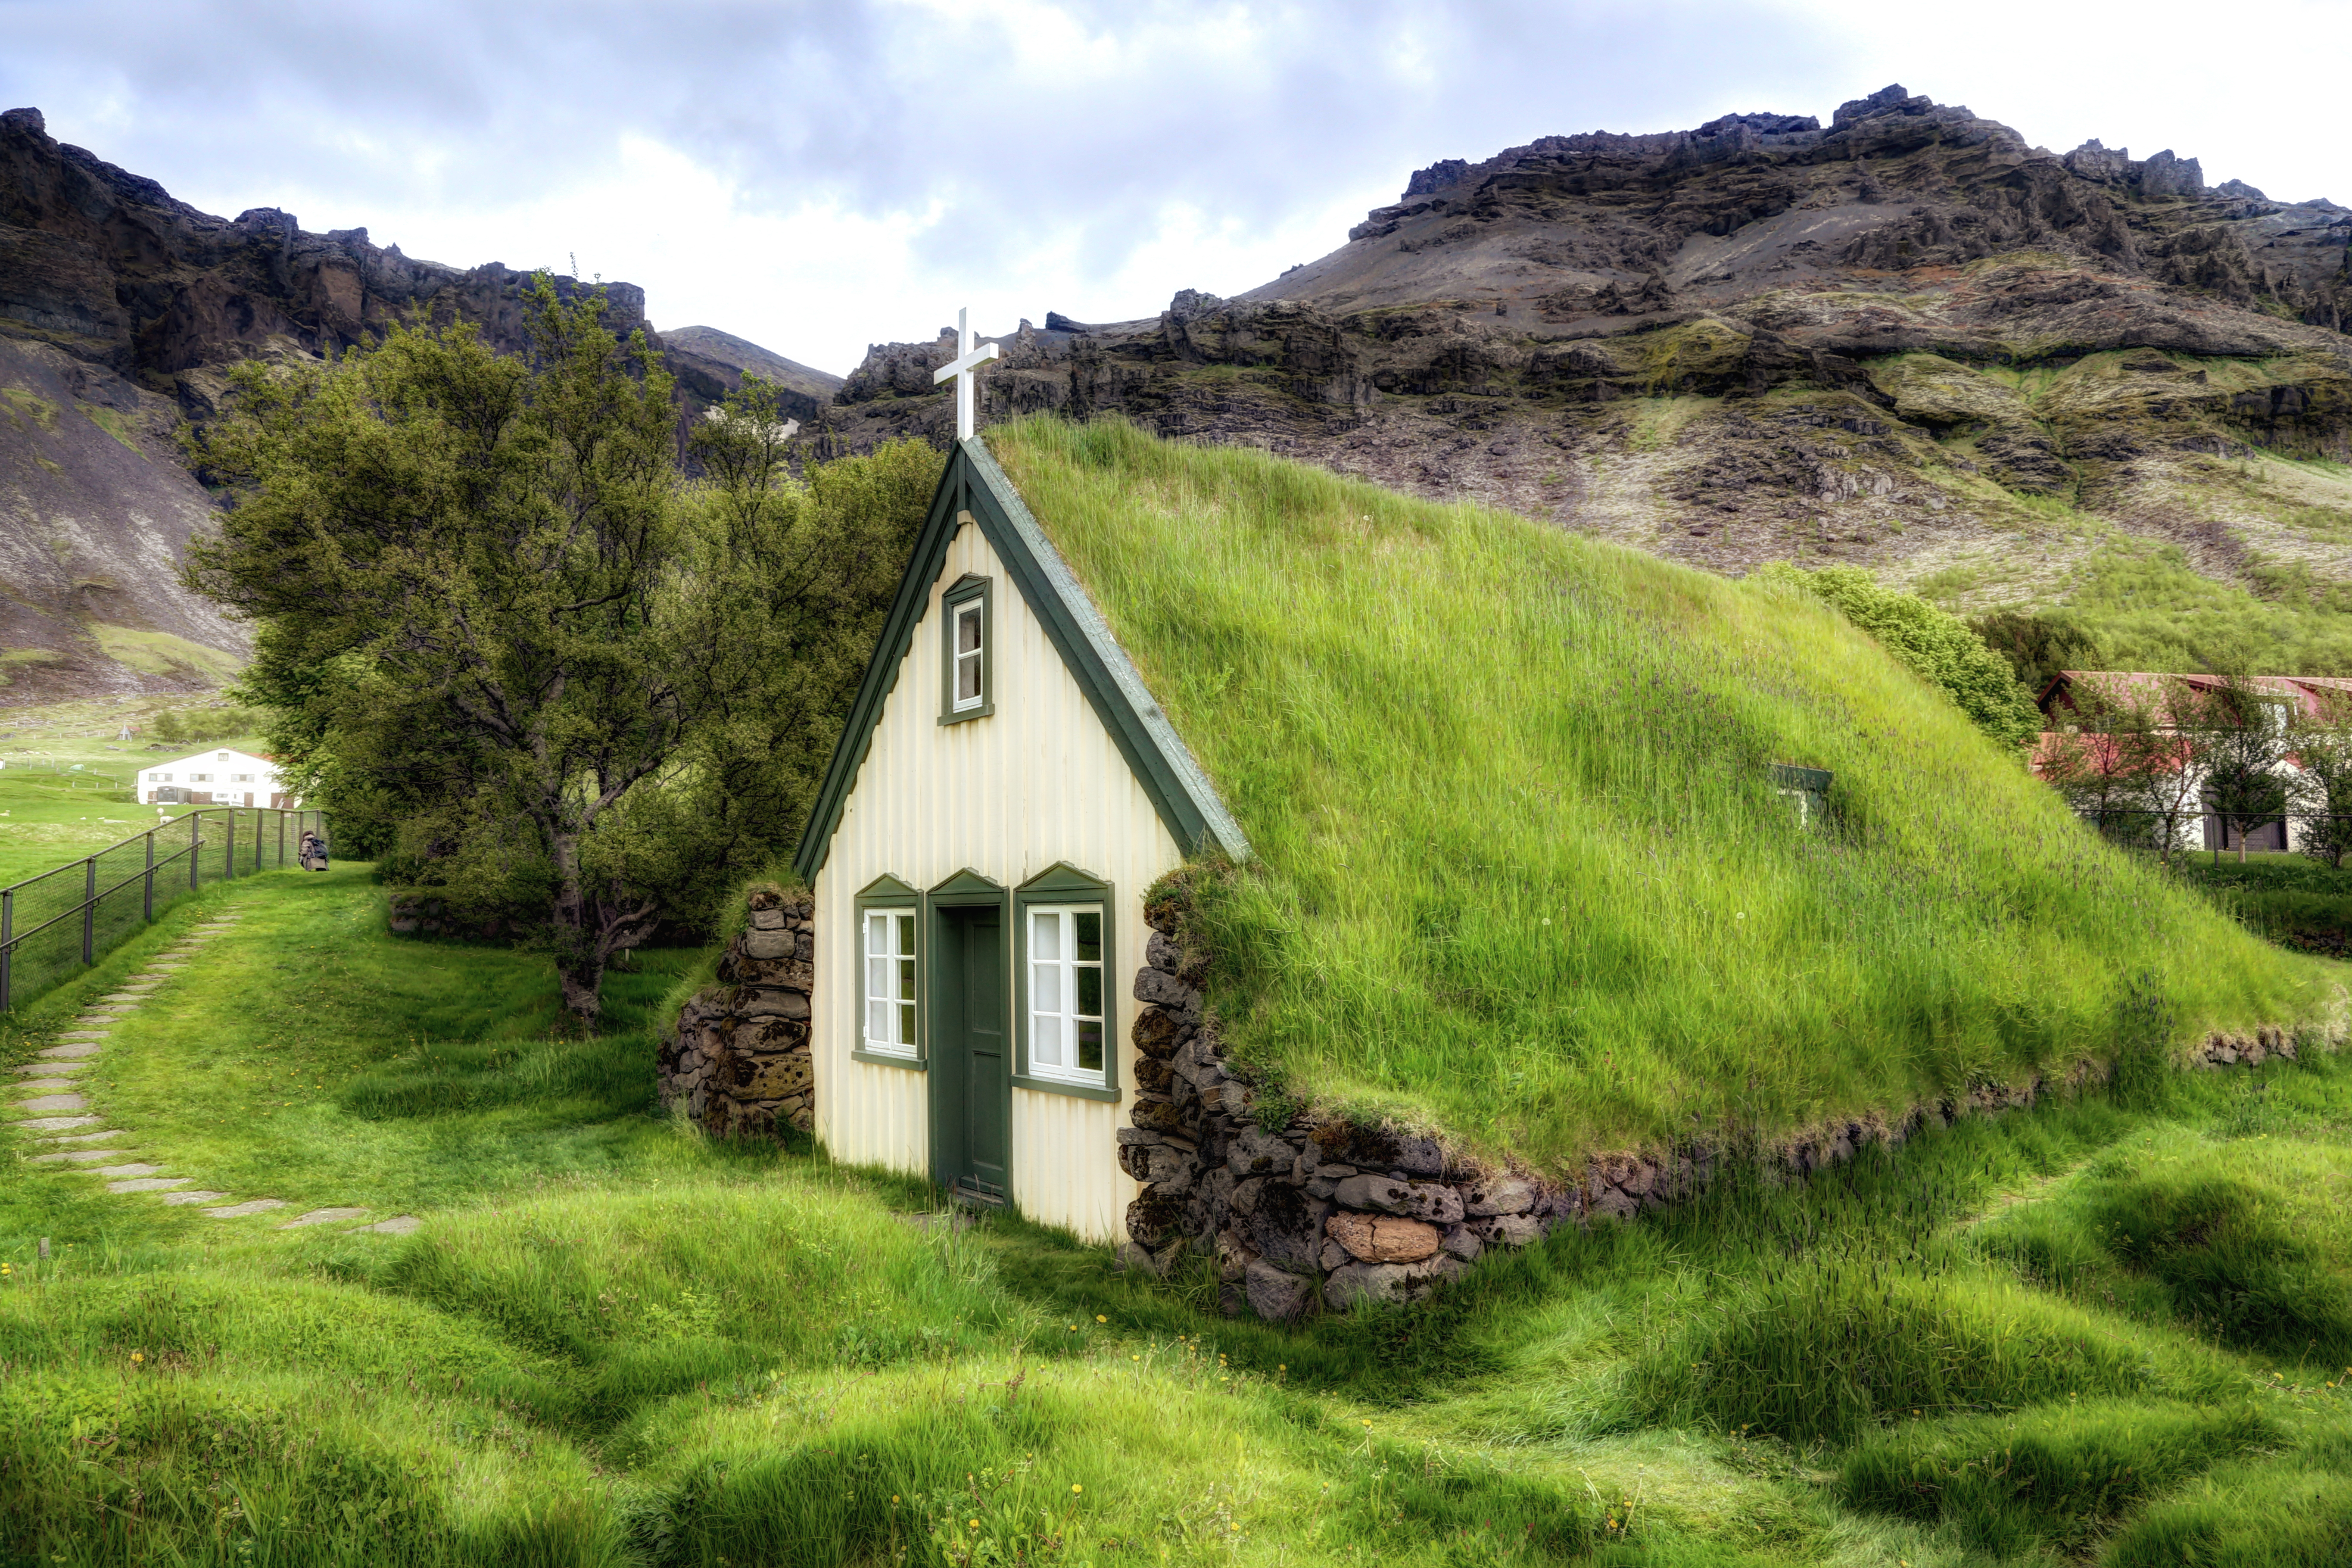 258 Iceland Hd Wallpapers Background Images Wallpaper Abyss